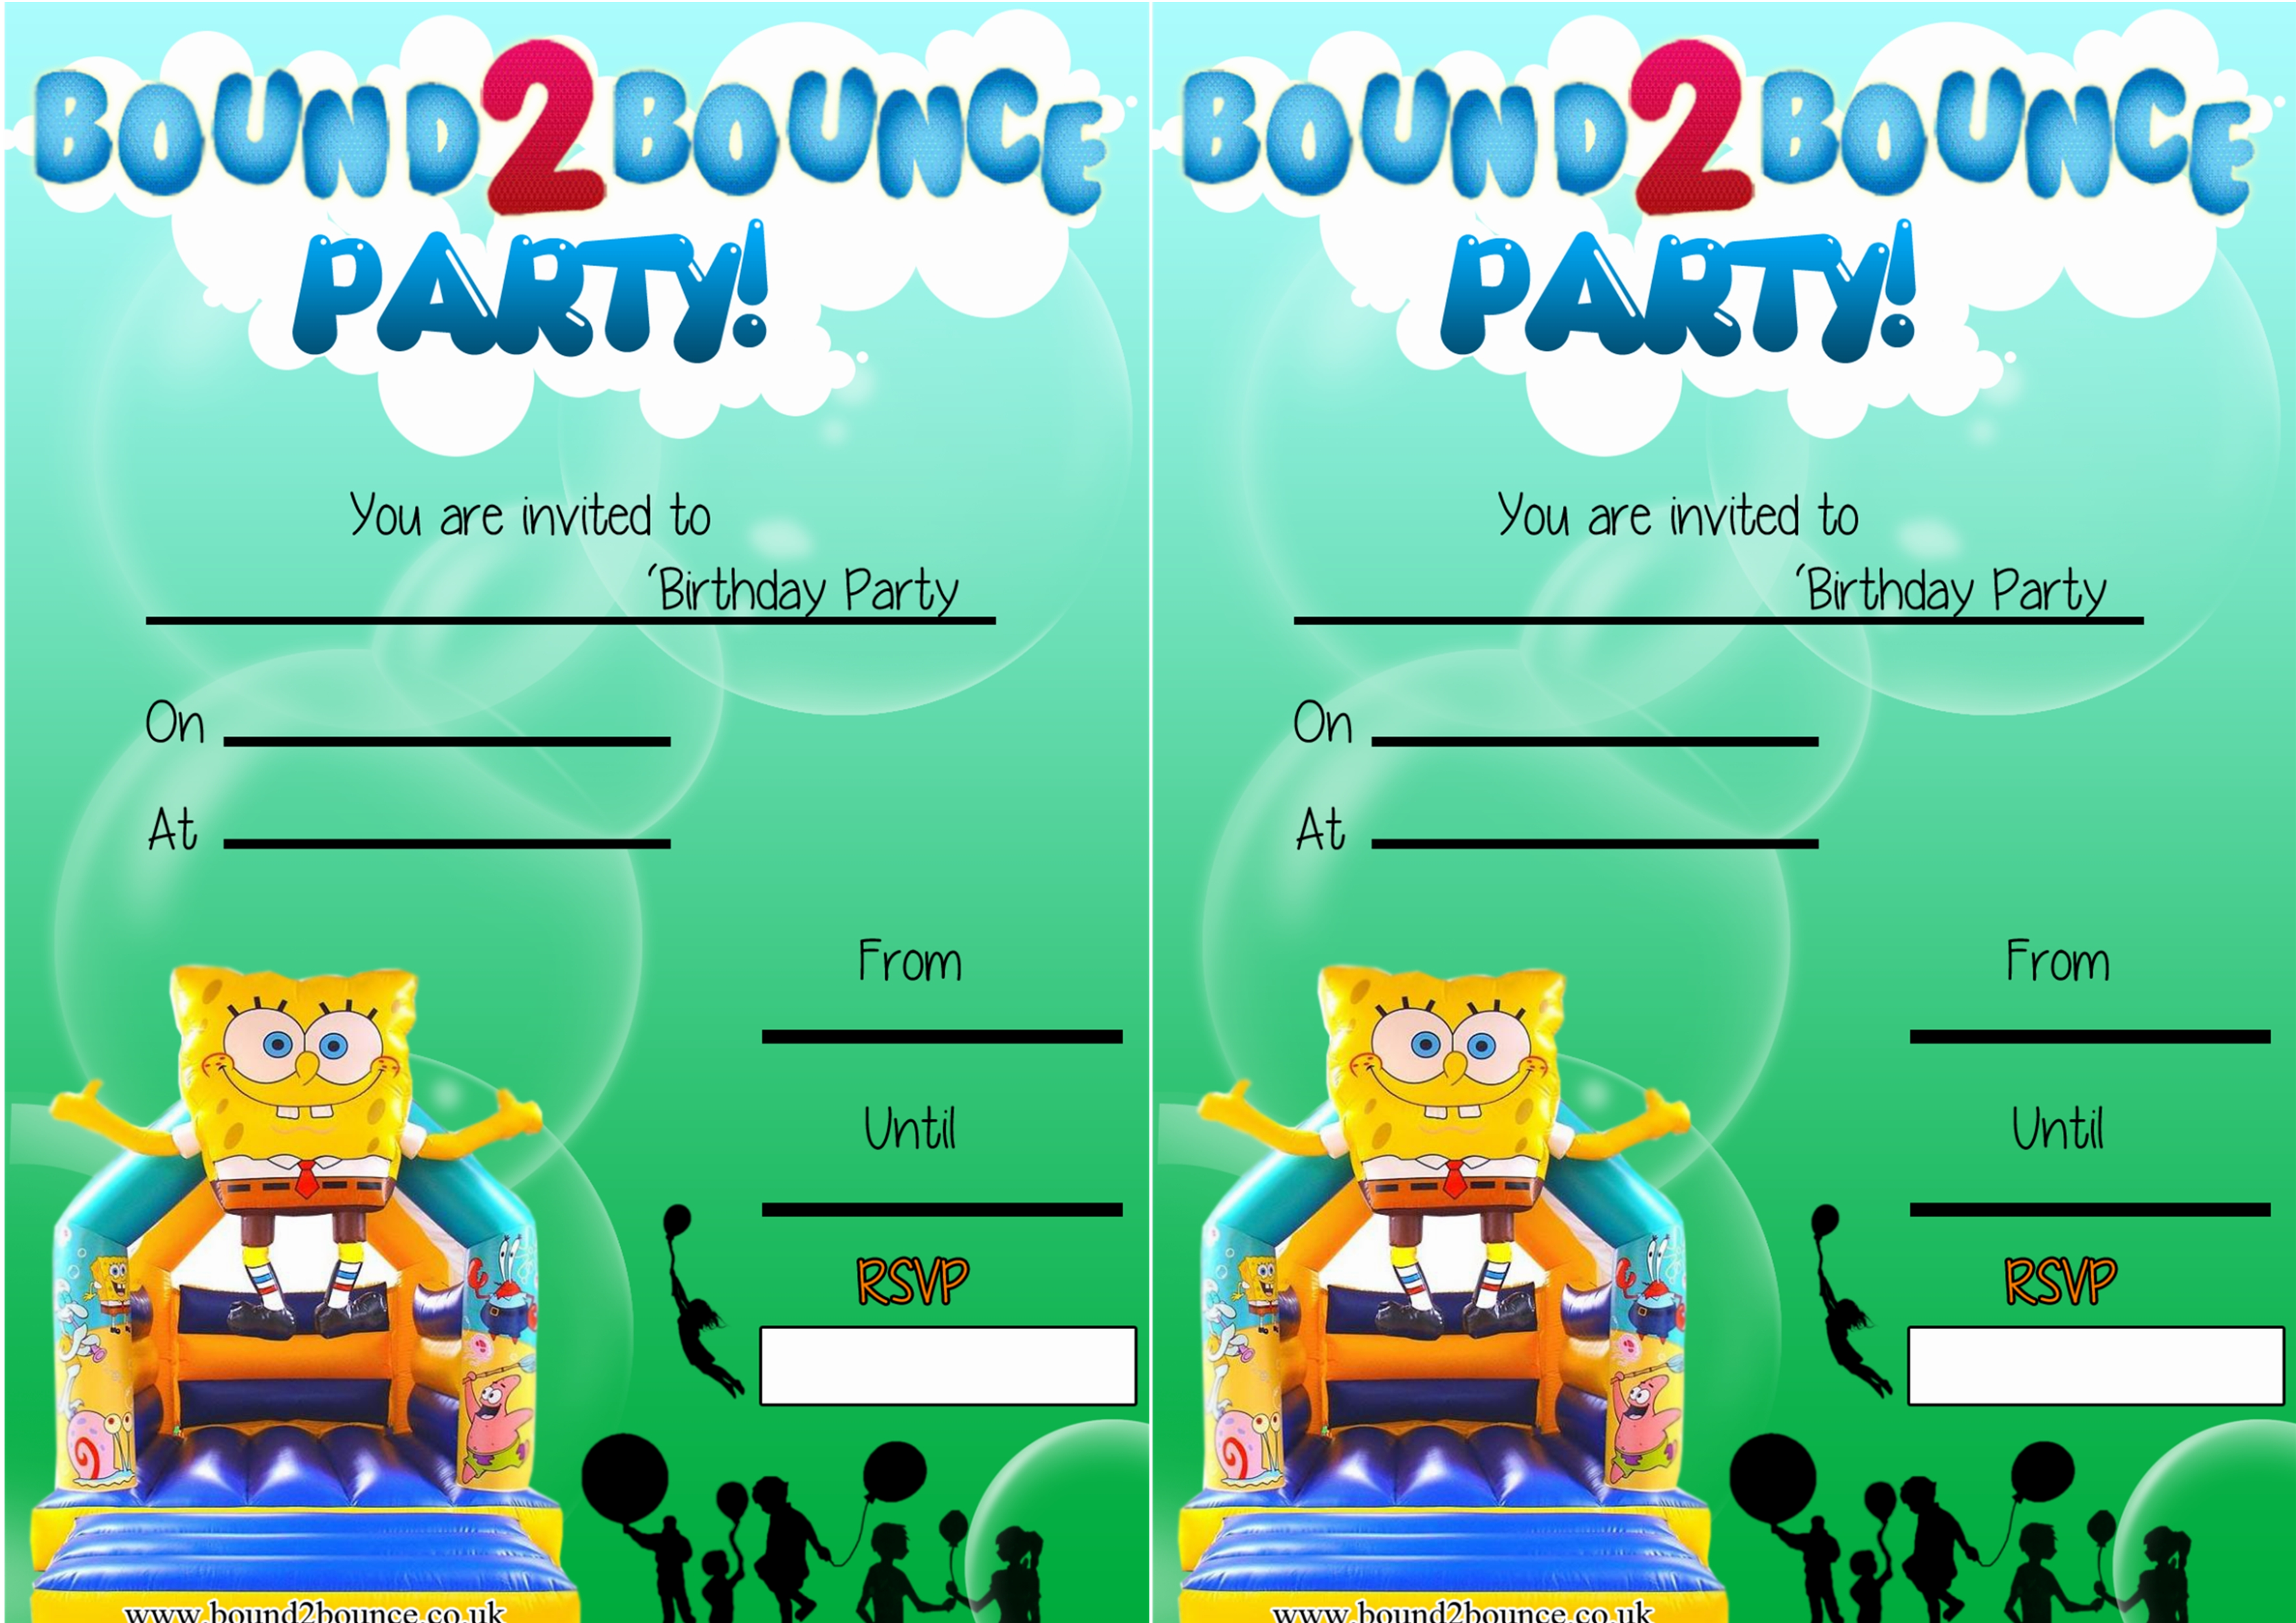 Party Invites – Bouncy Castle Party Invitations